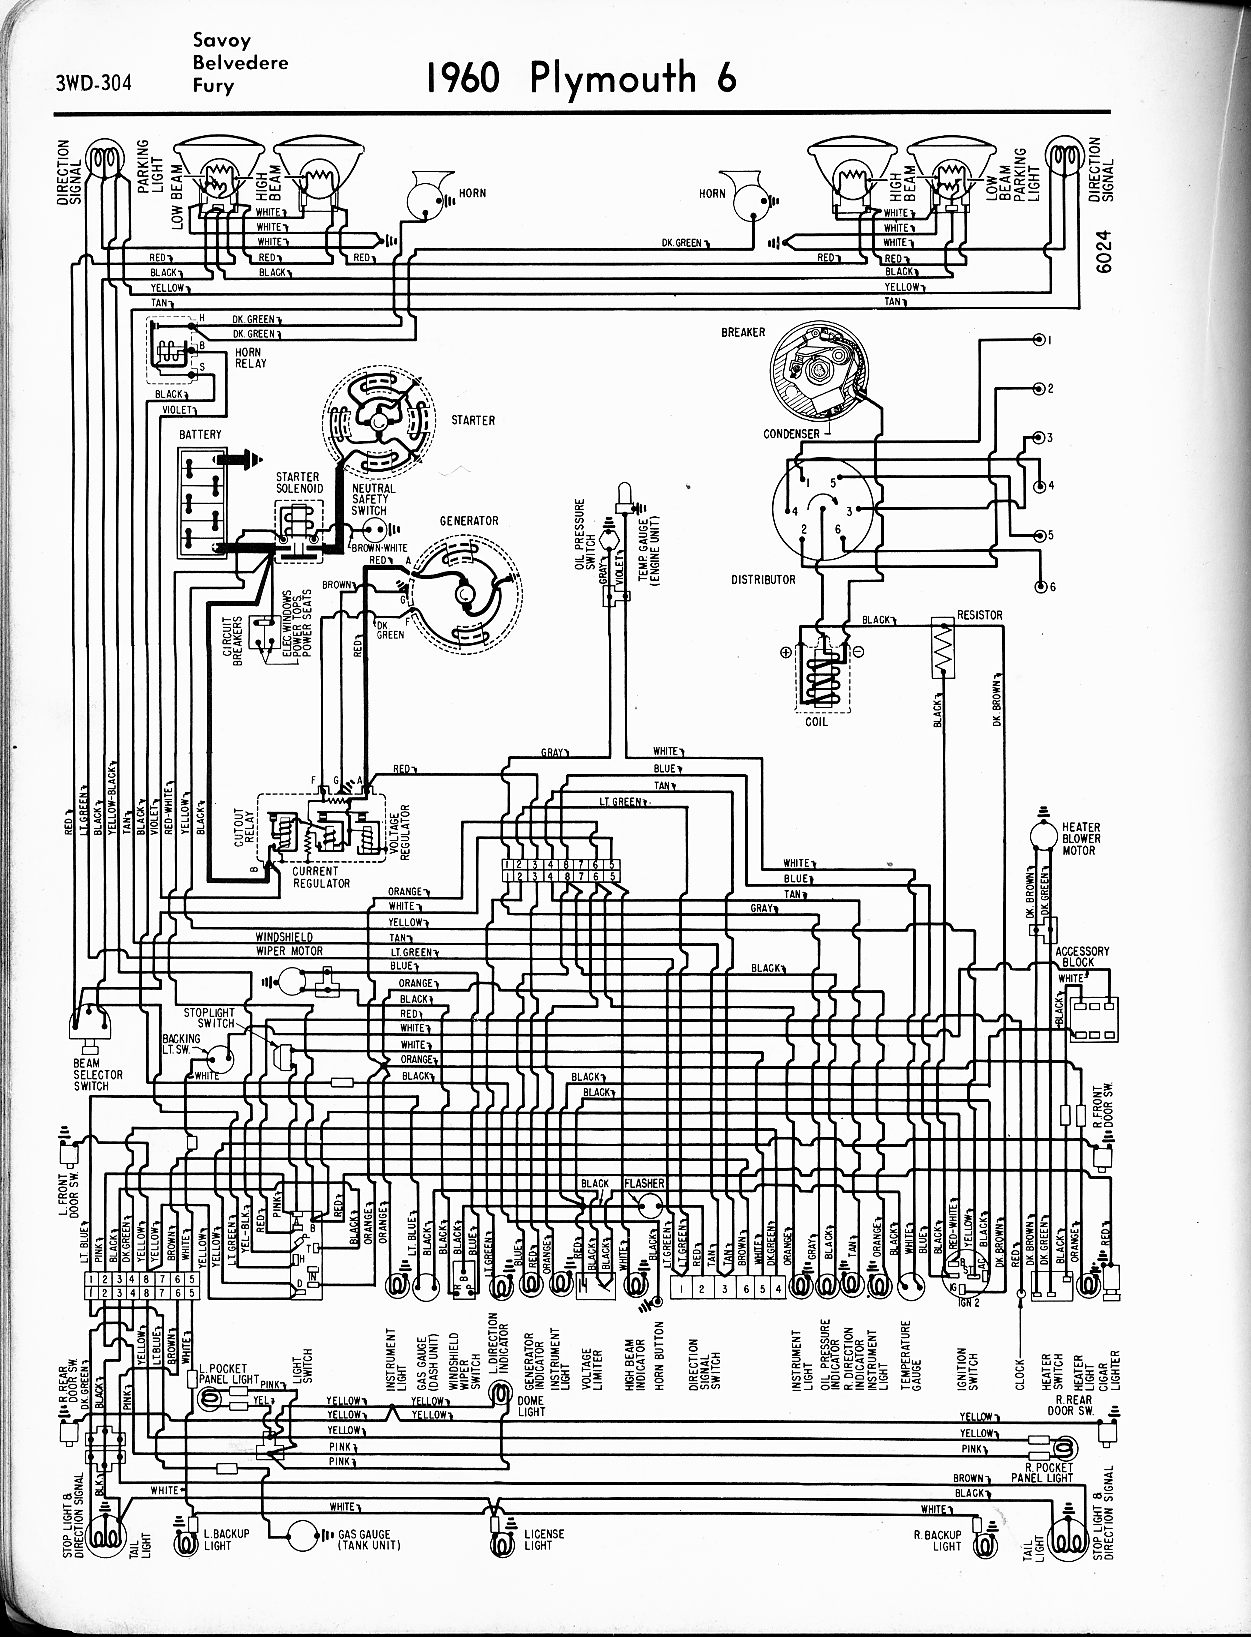 [MOBILIA] 1965 Plymouth Belvedere Wiring Diagram FULL